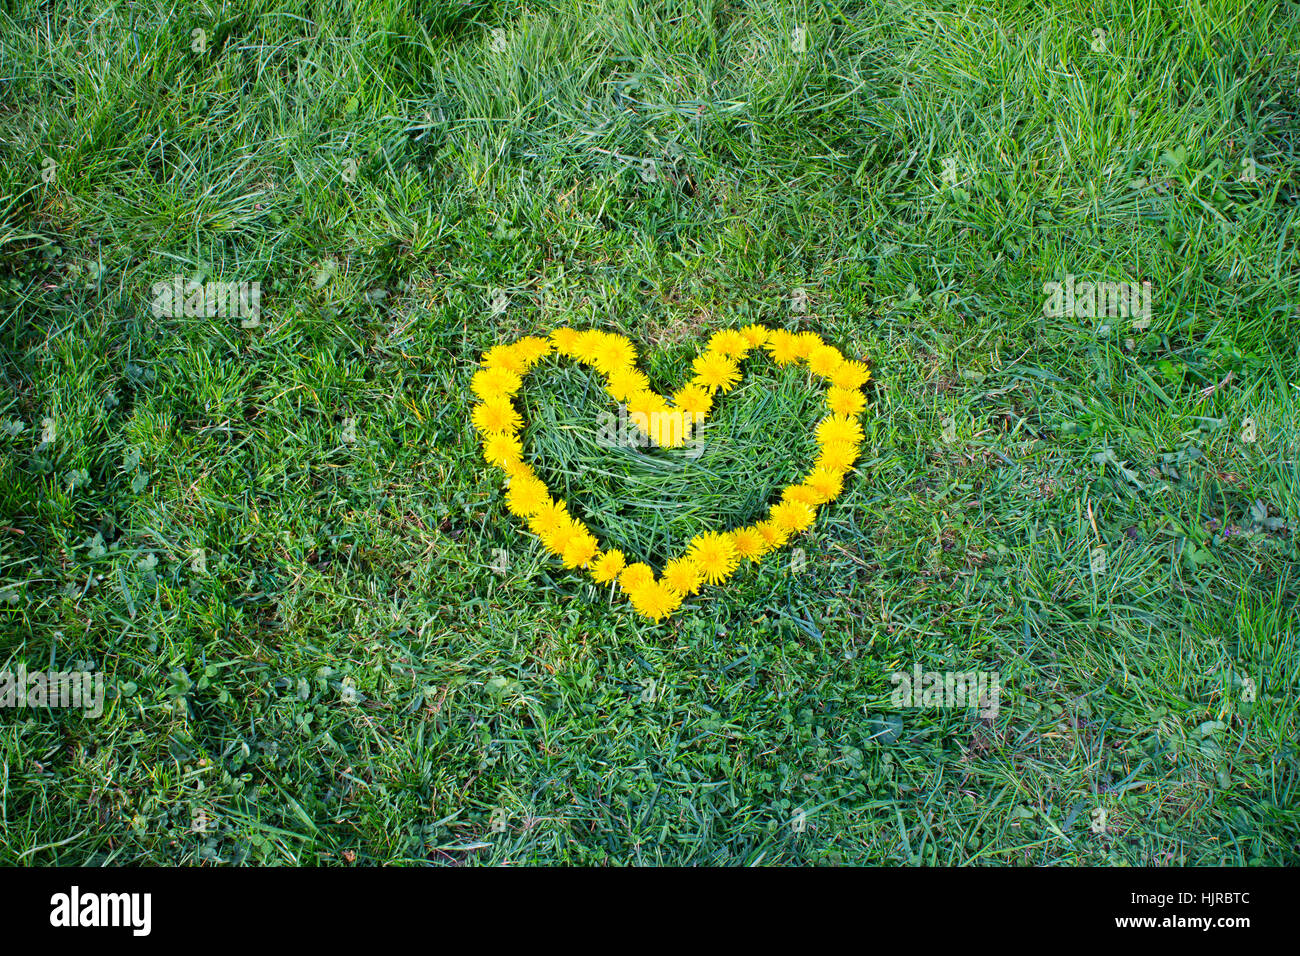 Heart Flower Made Of Dandelion Yellow Flowered Weed Flowers On